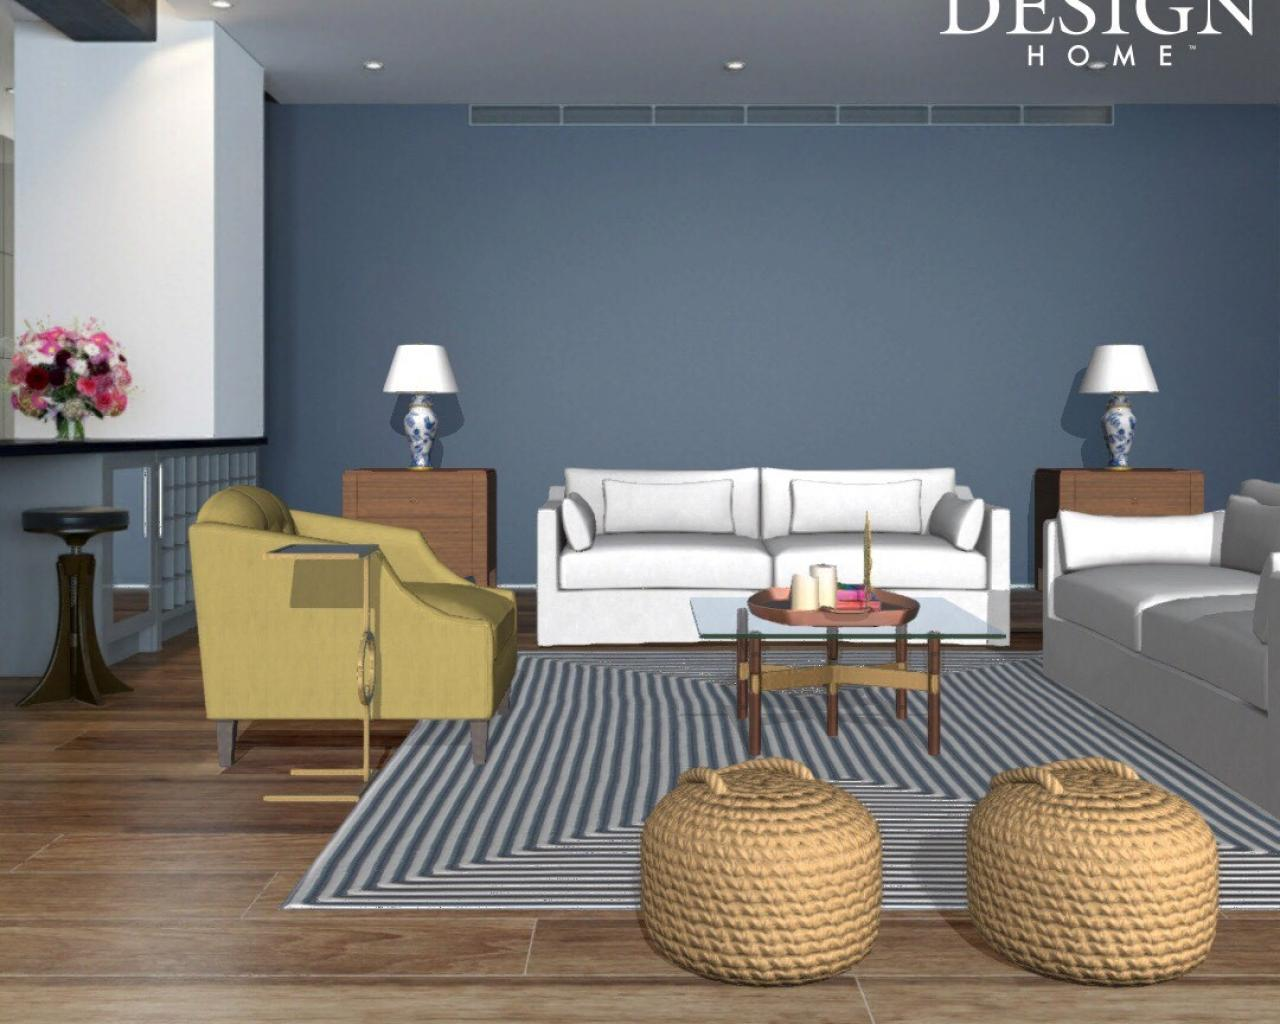 Be an interior designer with design home app hgtv 39 s Home design latest